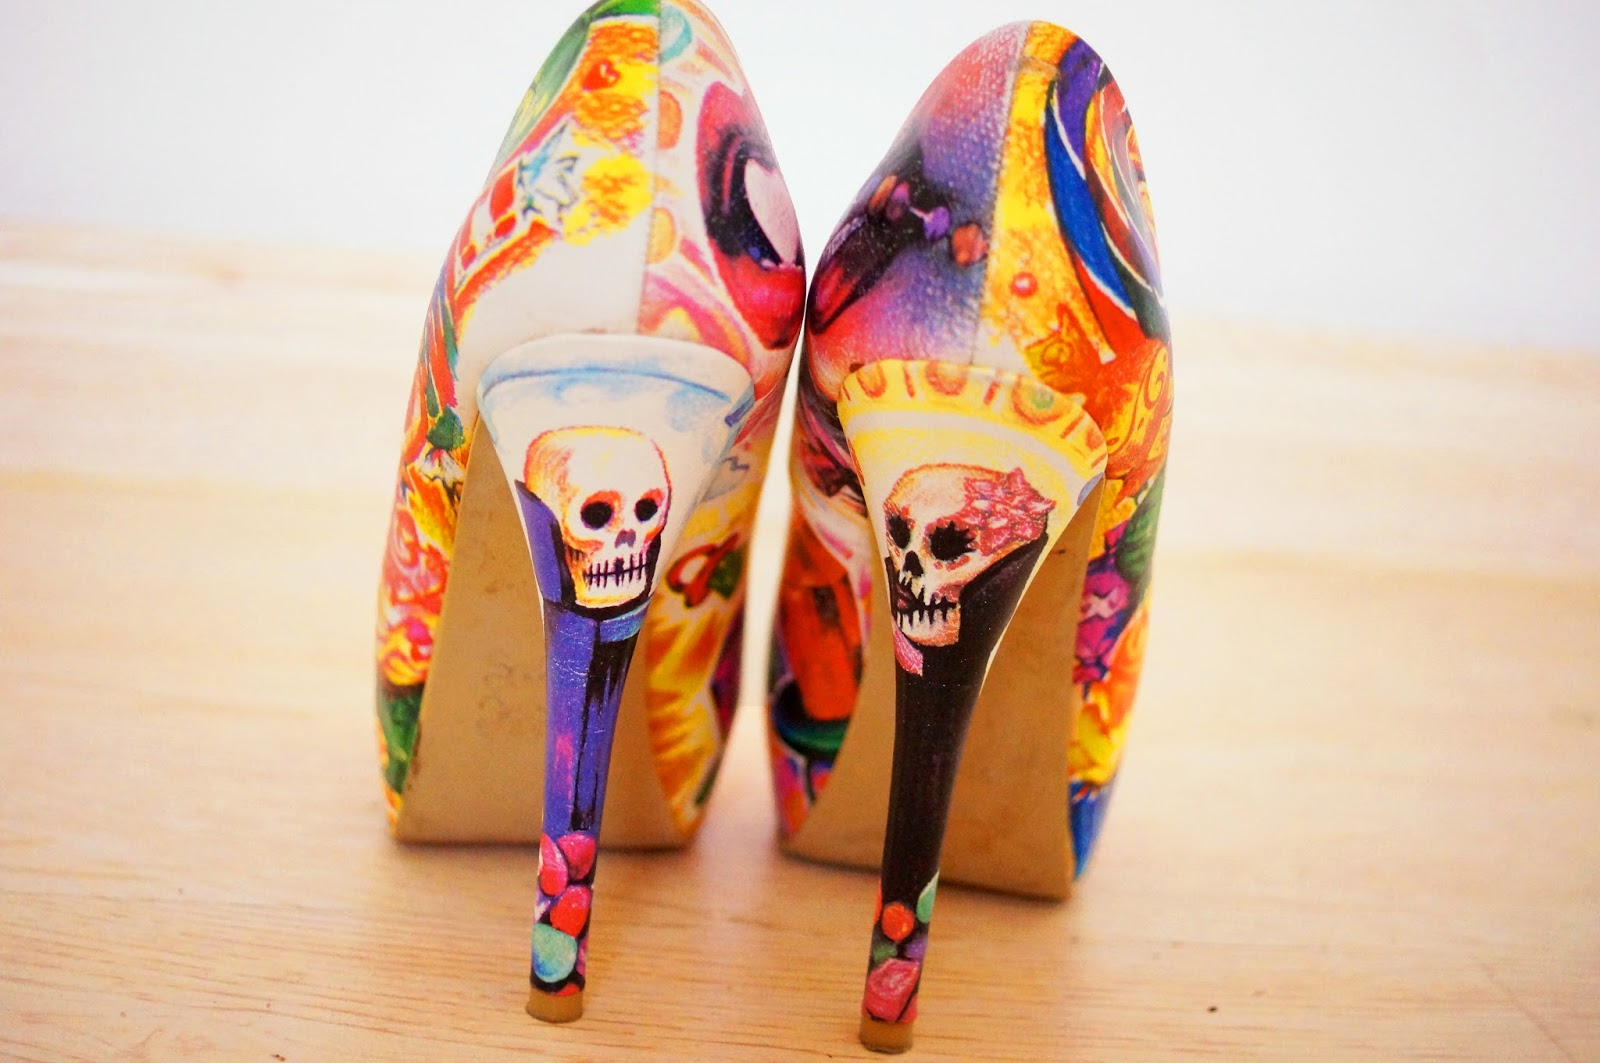 Super cute candy shoes!